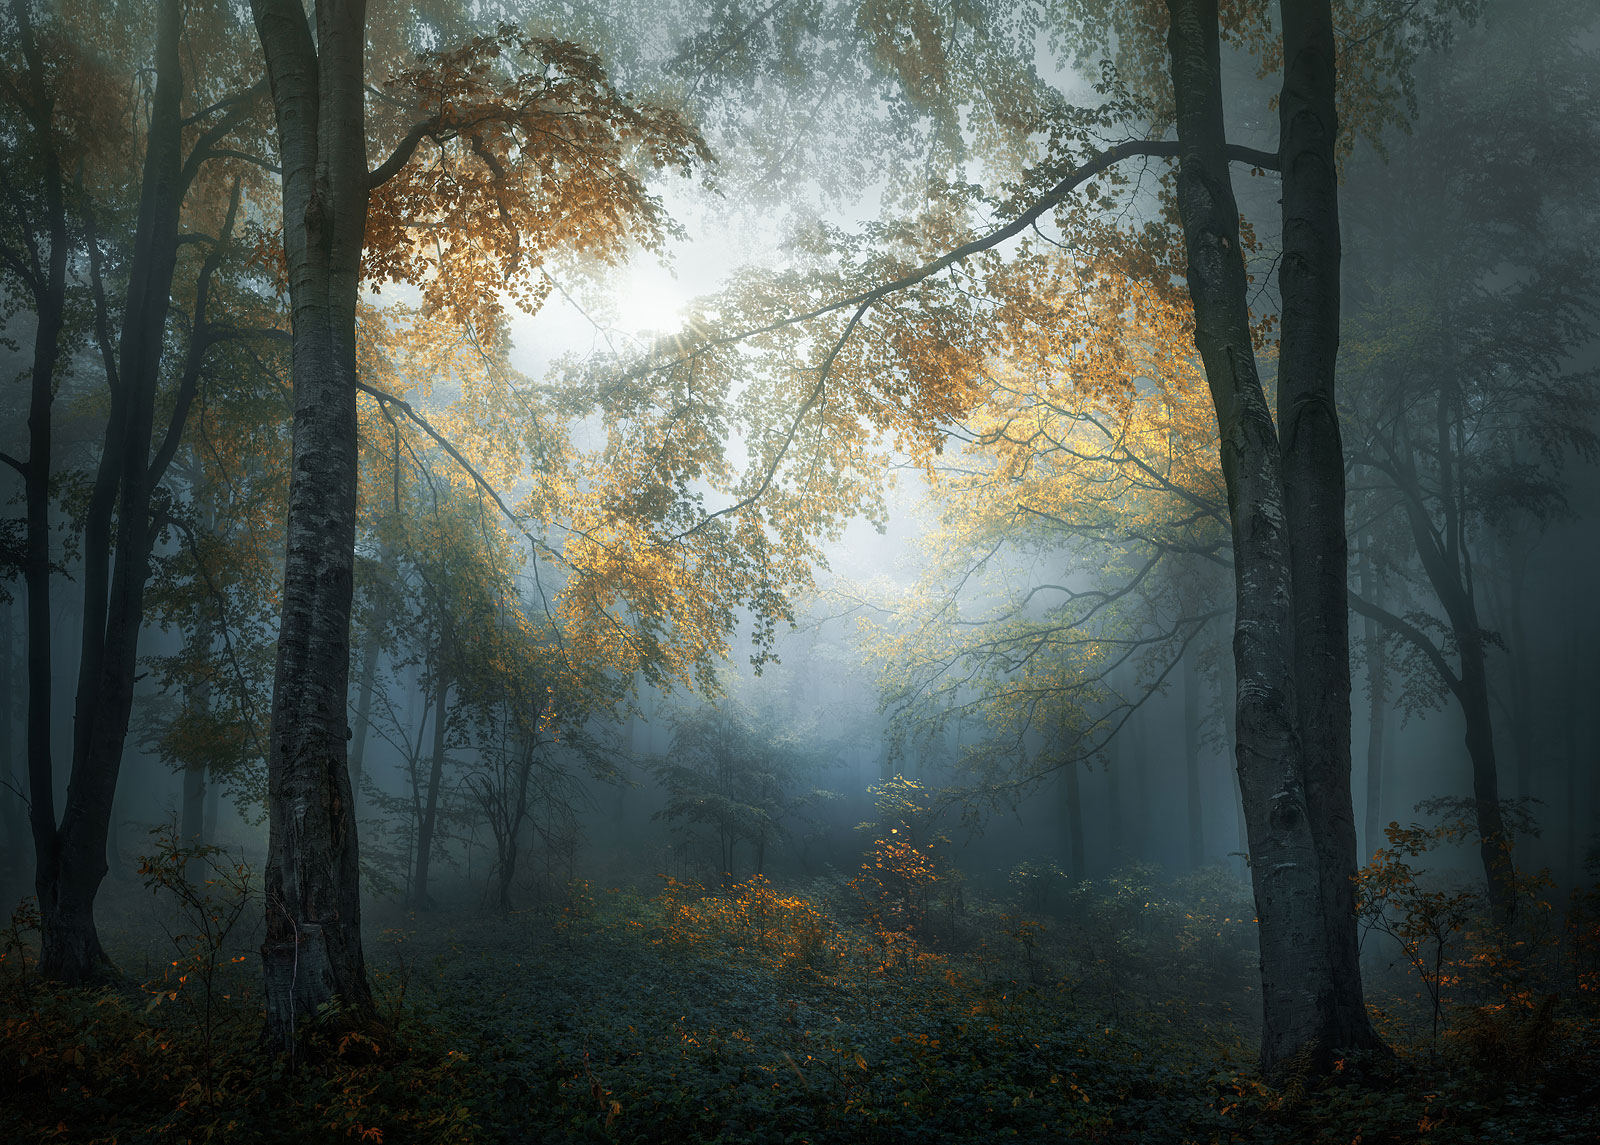 foto: © Veselin Atanasov, Bulgaria - Open, Landscape & Nature (2018 Open competition), Open Photographer of the Year, 2018, Sony World Photography Awards